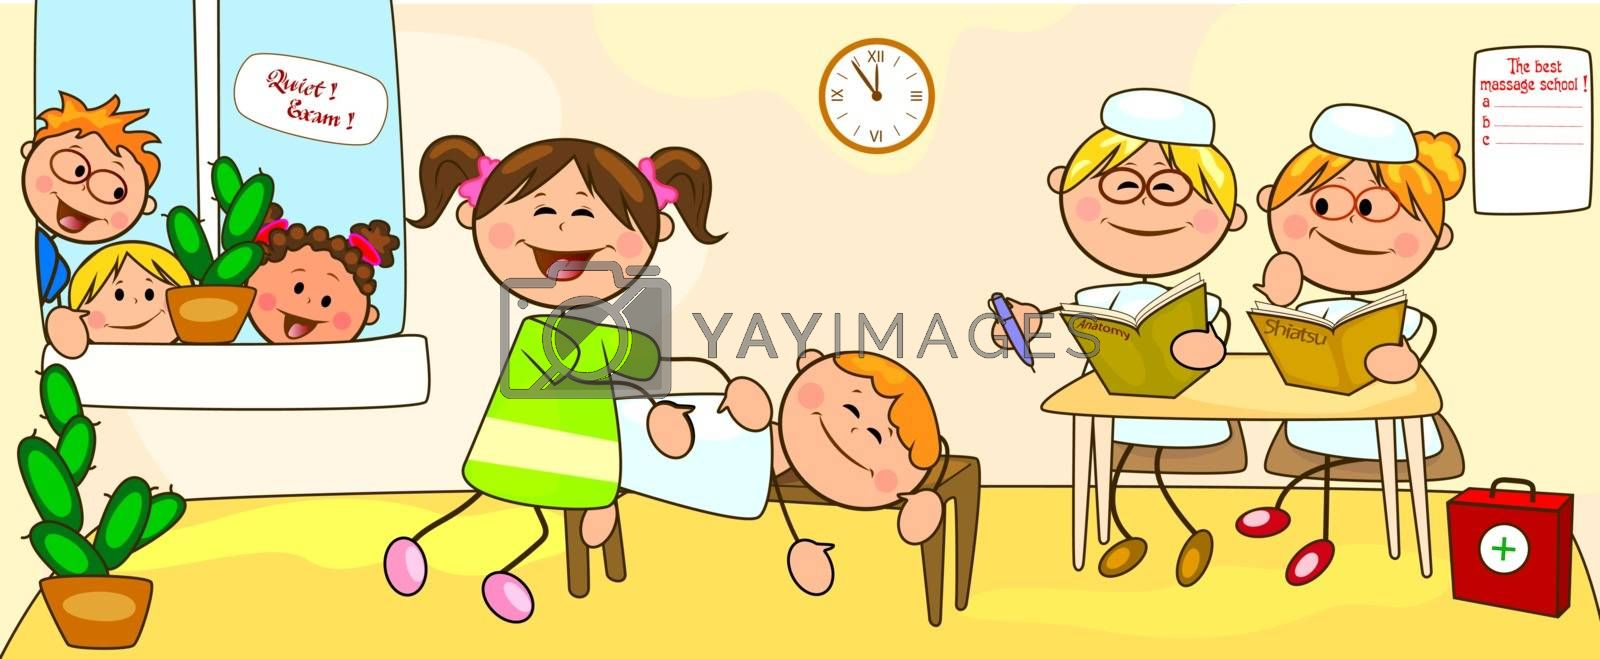 Girl doing massage. Examination on the courses on massage. School of massage, exam. Cartoon children in massage classes.